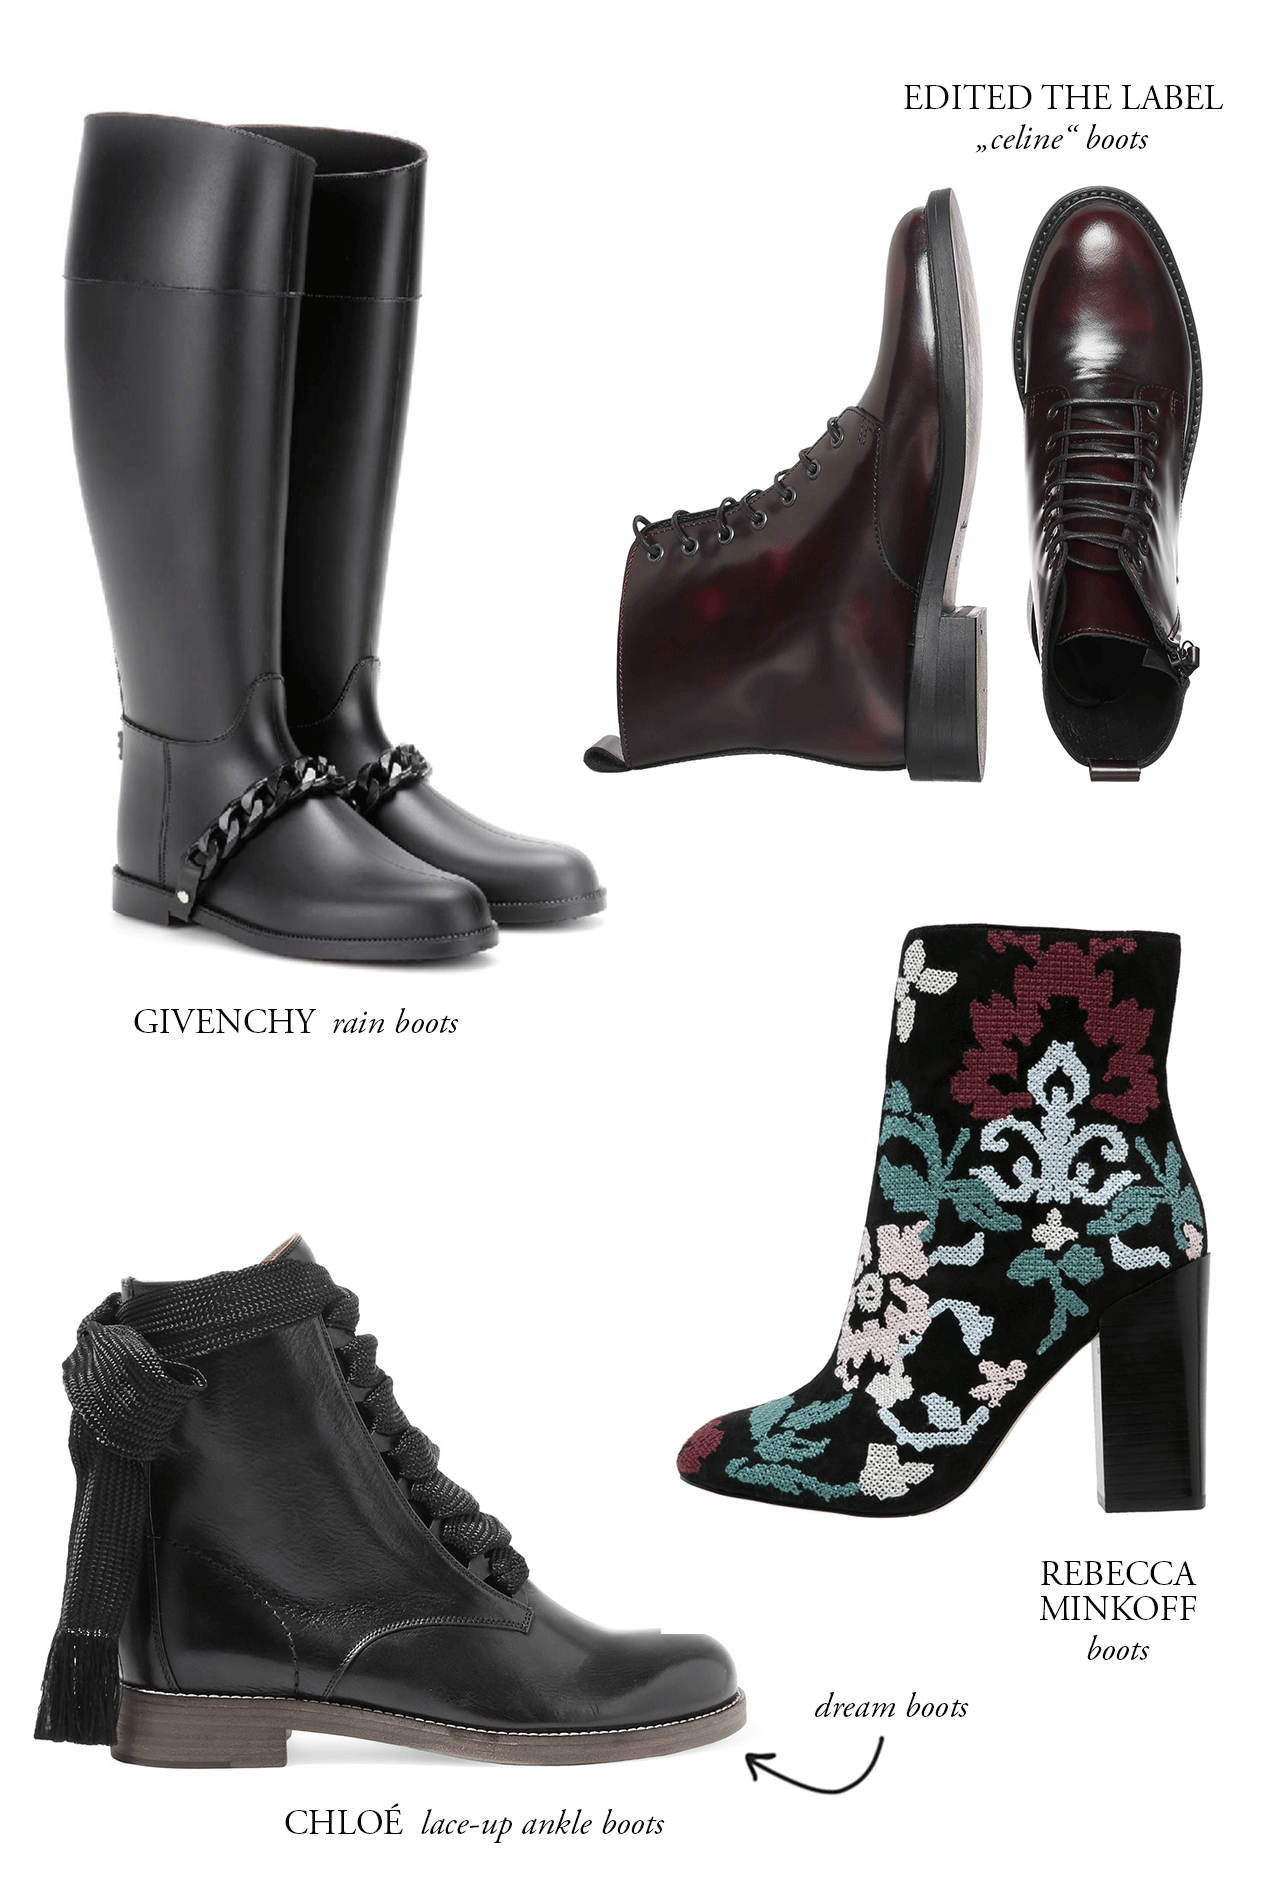 CRAVINGS: dream boots.